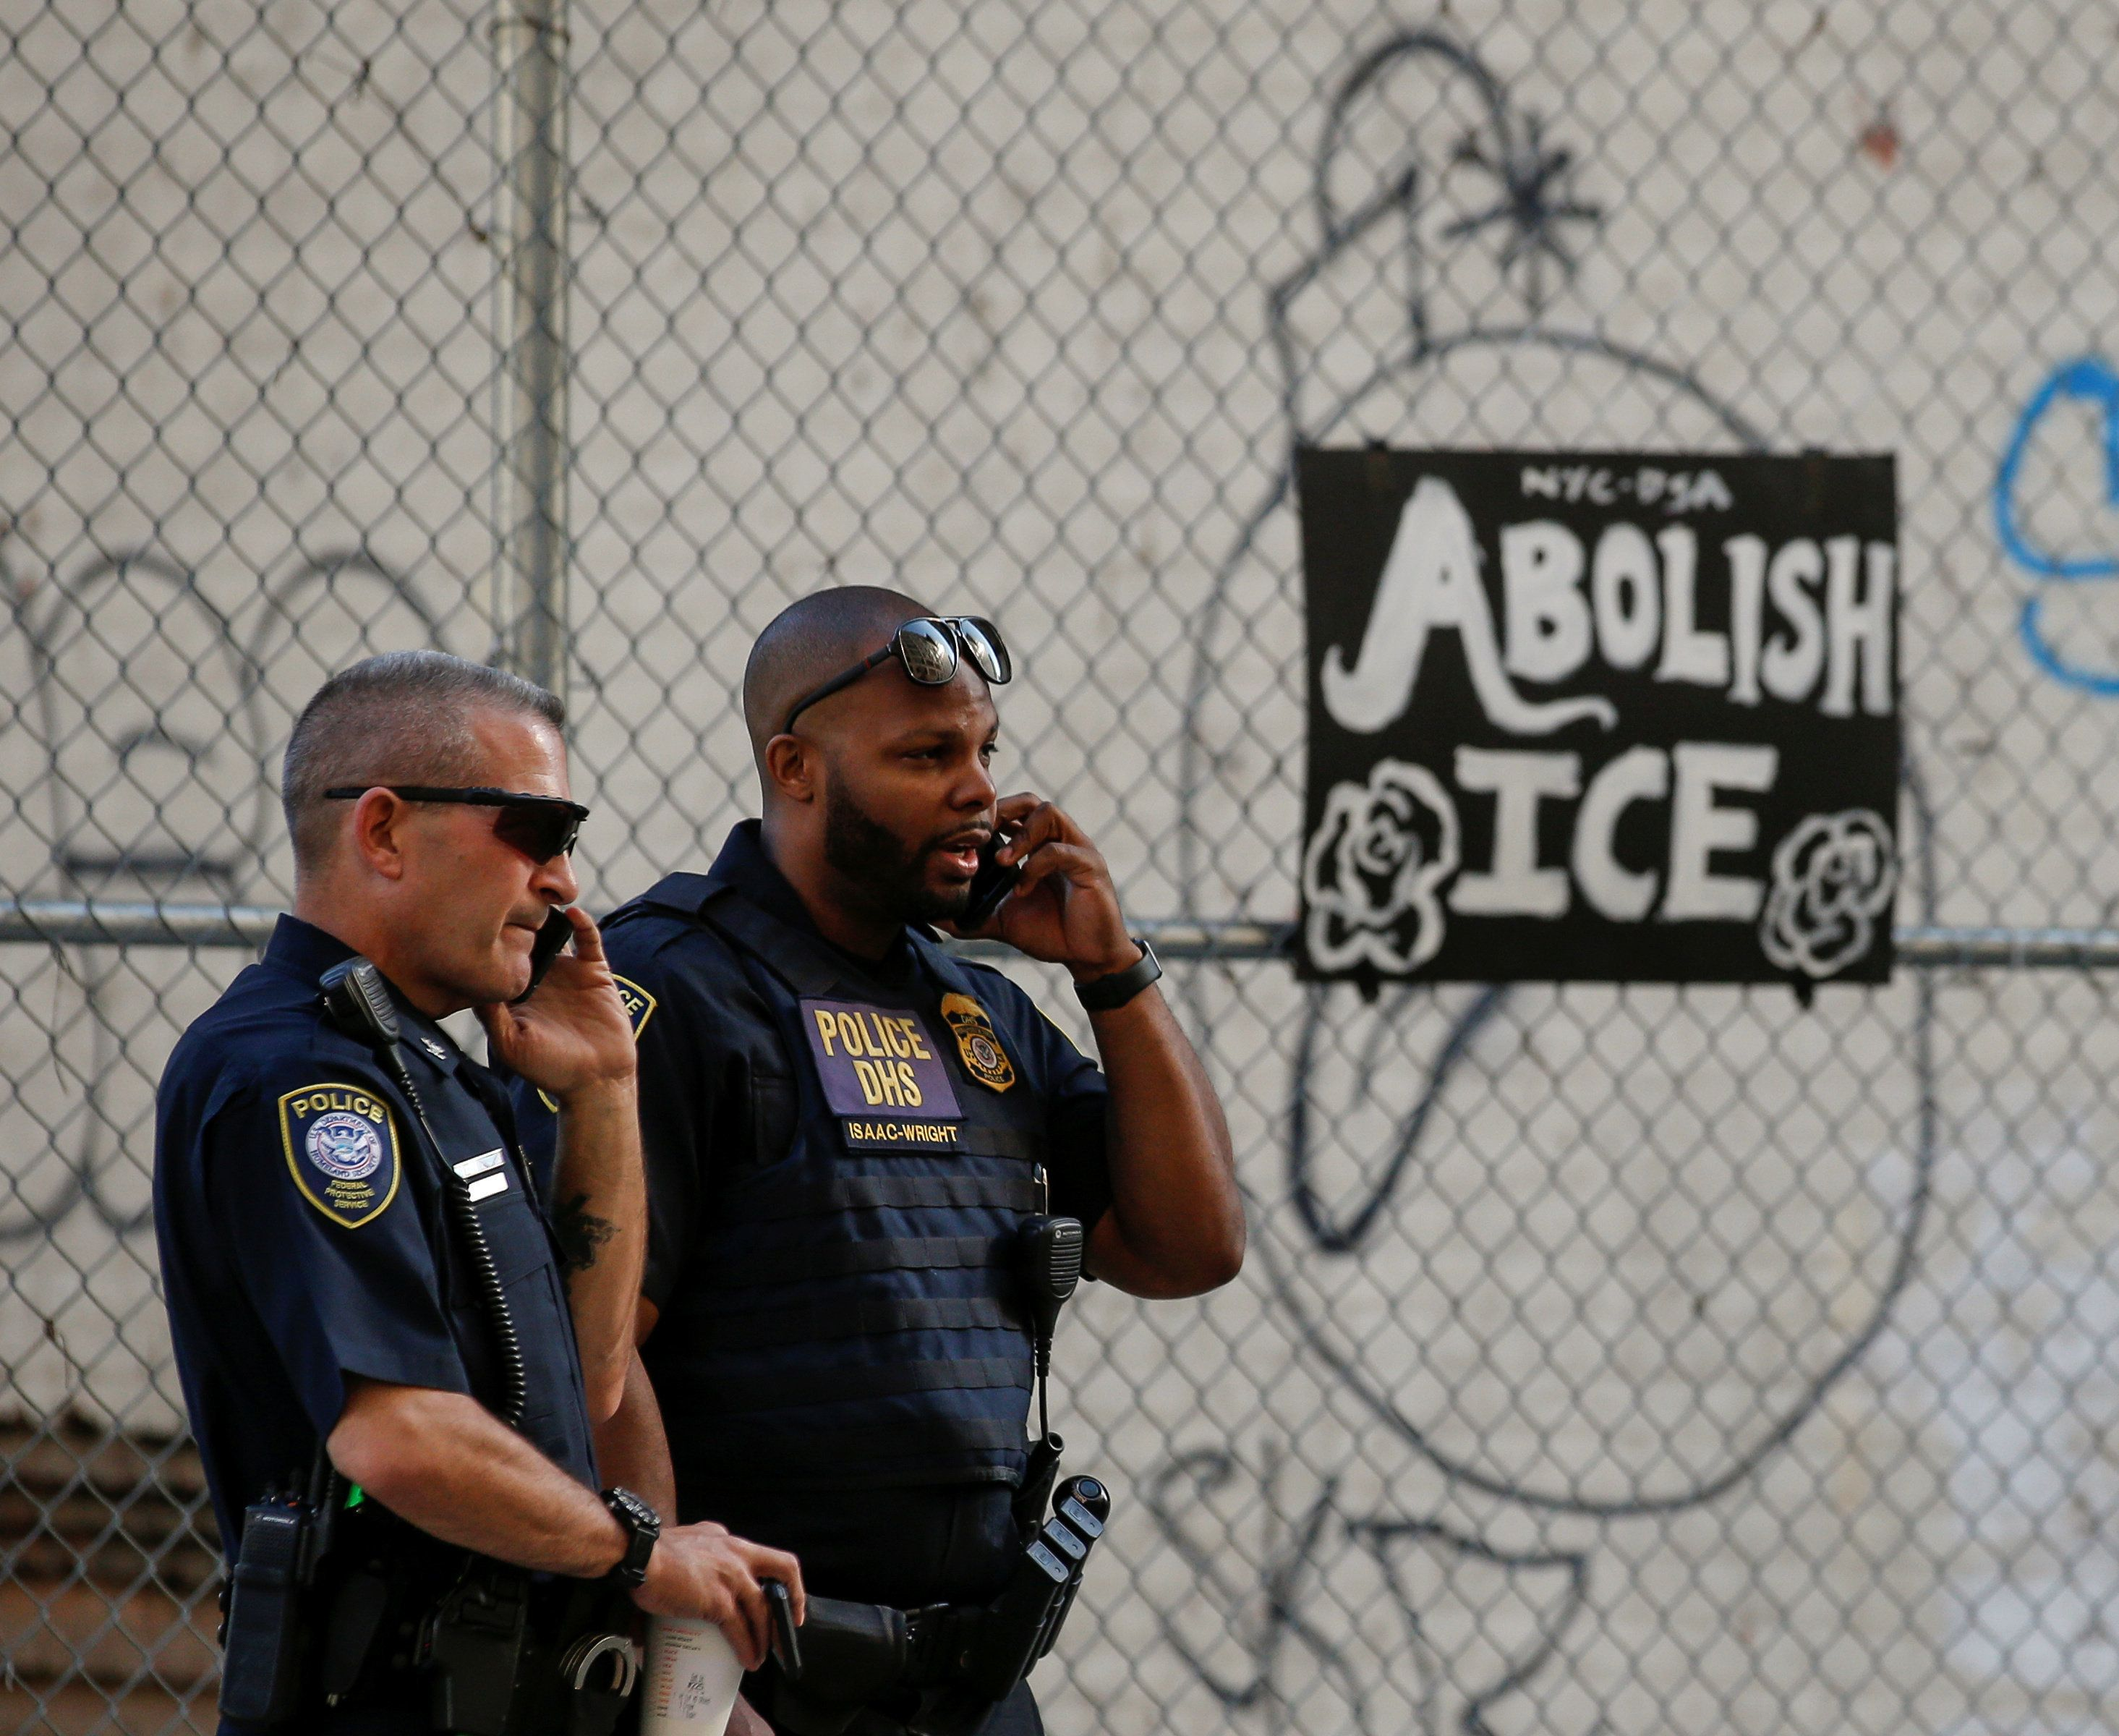 Department of Homeland Security officers  watch members of Occupy ICE, a group set on disrupting Immigration and Customs Enforcement (ICE) operations, outside the ICE offices in New York City, U.S., June 25, 2018. REUTERS/Brendan McDermid